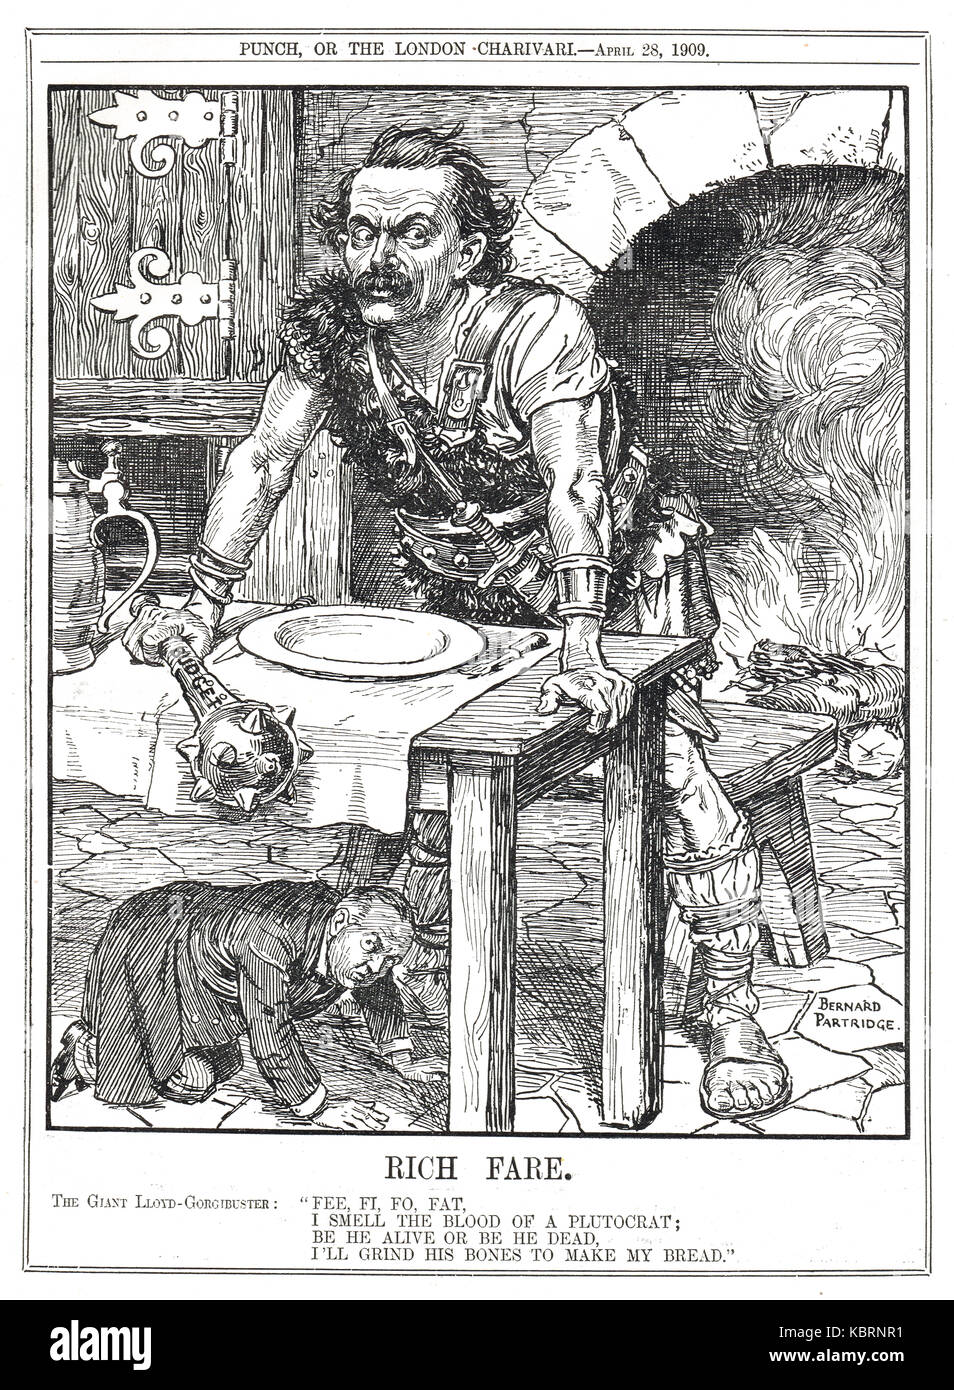 Lloyd George as a pantomime Giant smelling the rich, the People's budget, 1909-10 - Stock Image